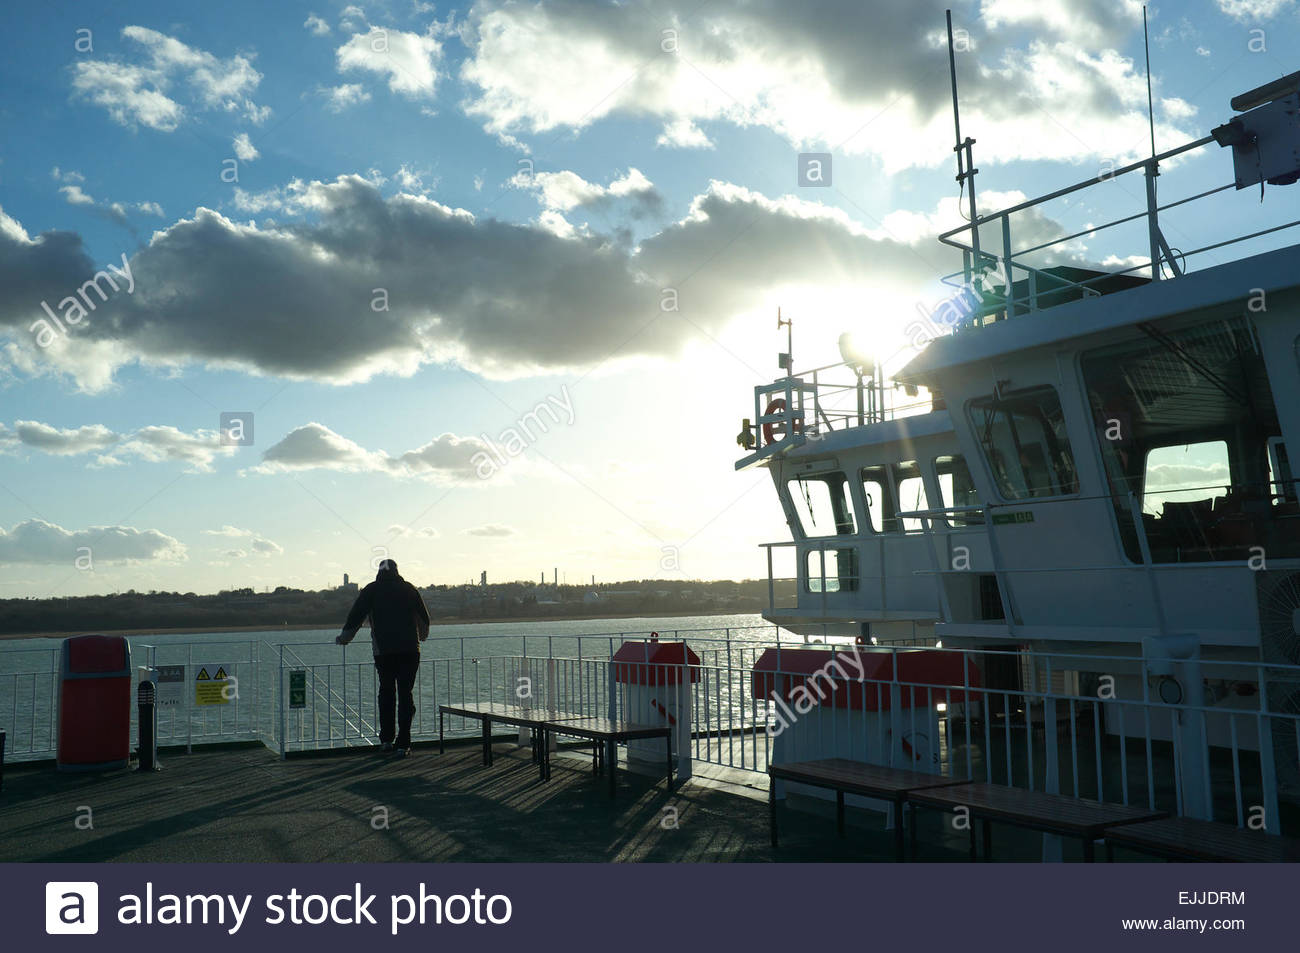 A passenger looks out across the water as the Red Funnel Ferry approaches Southampton port during sunset. Hampshire, - Stock Image